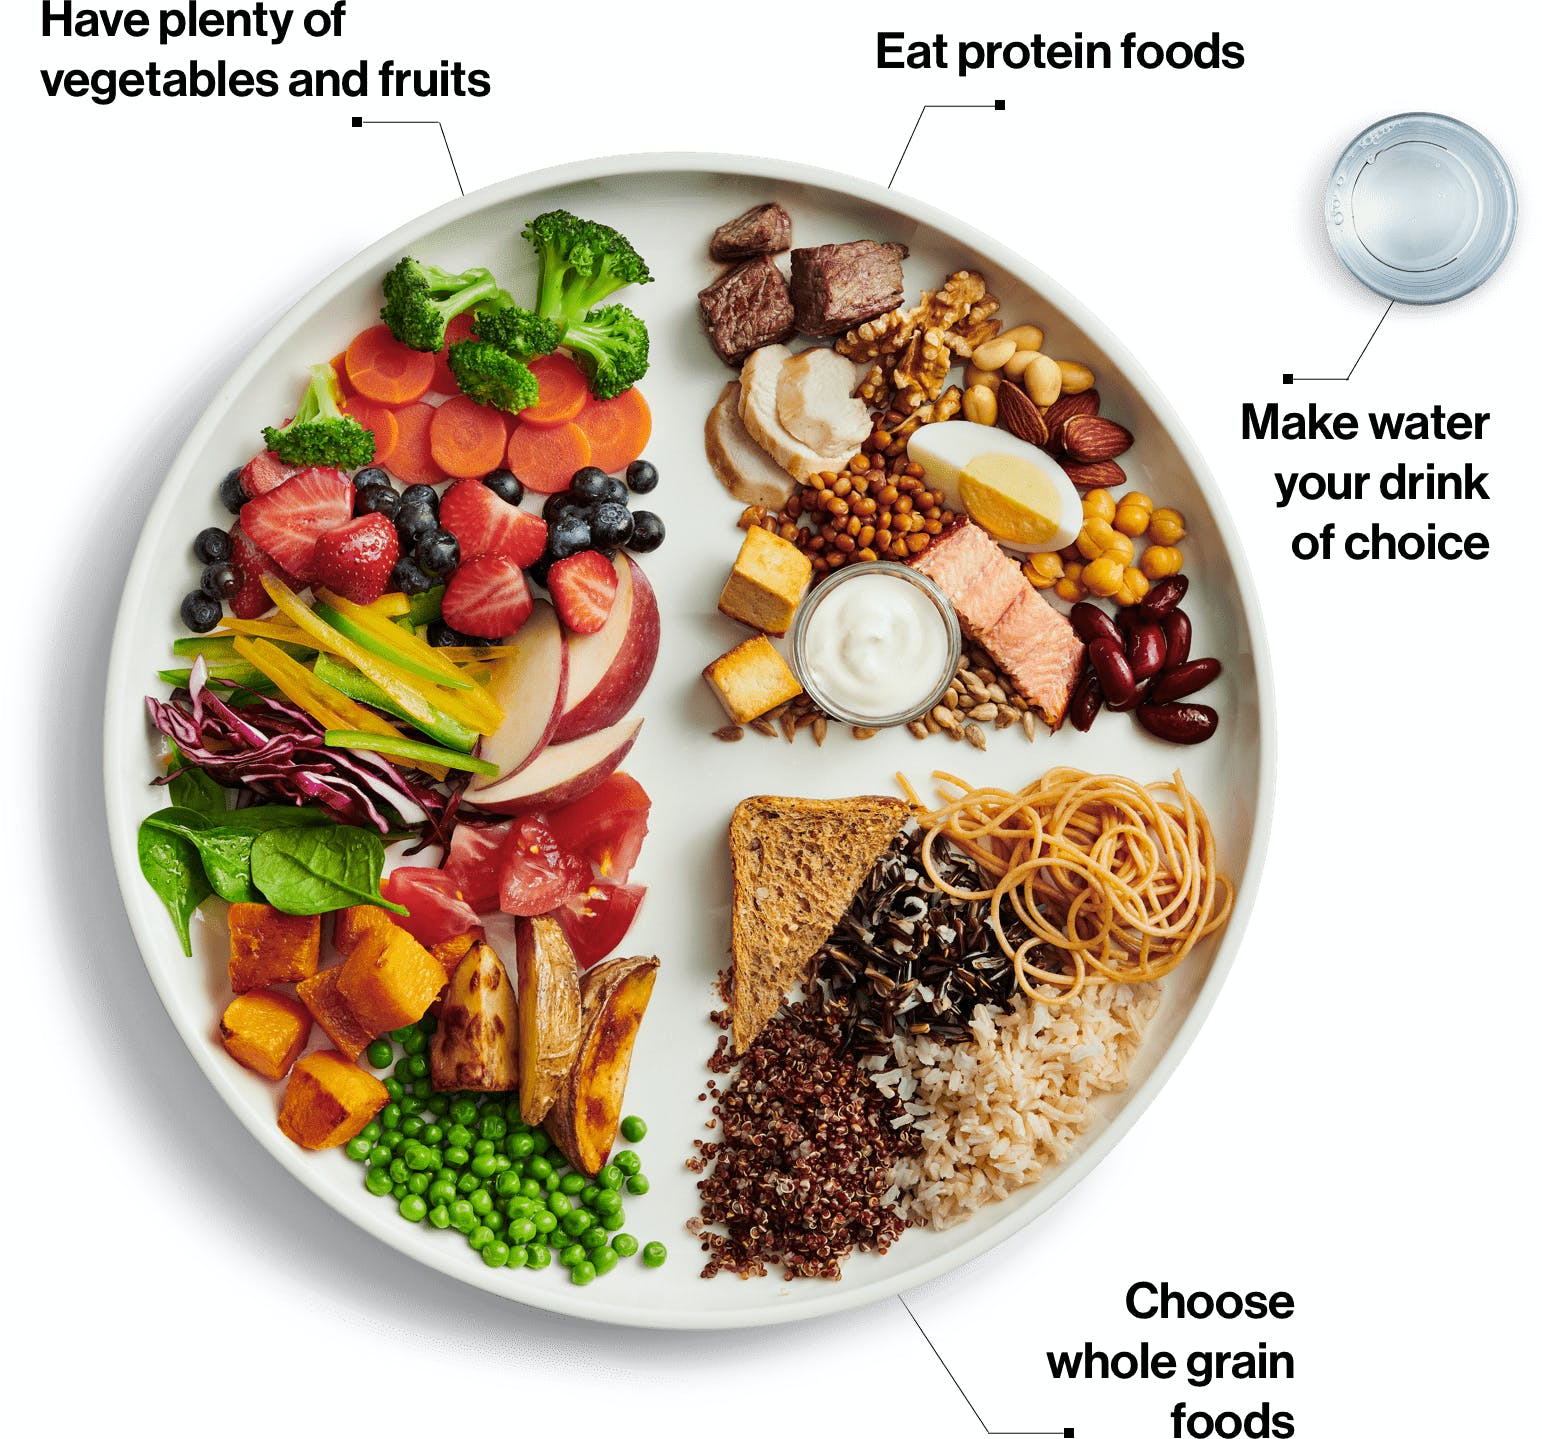 The new Canada Food Guide: Once again high-carb, low-fat